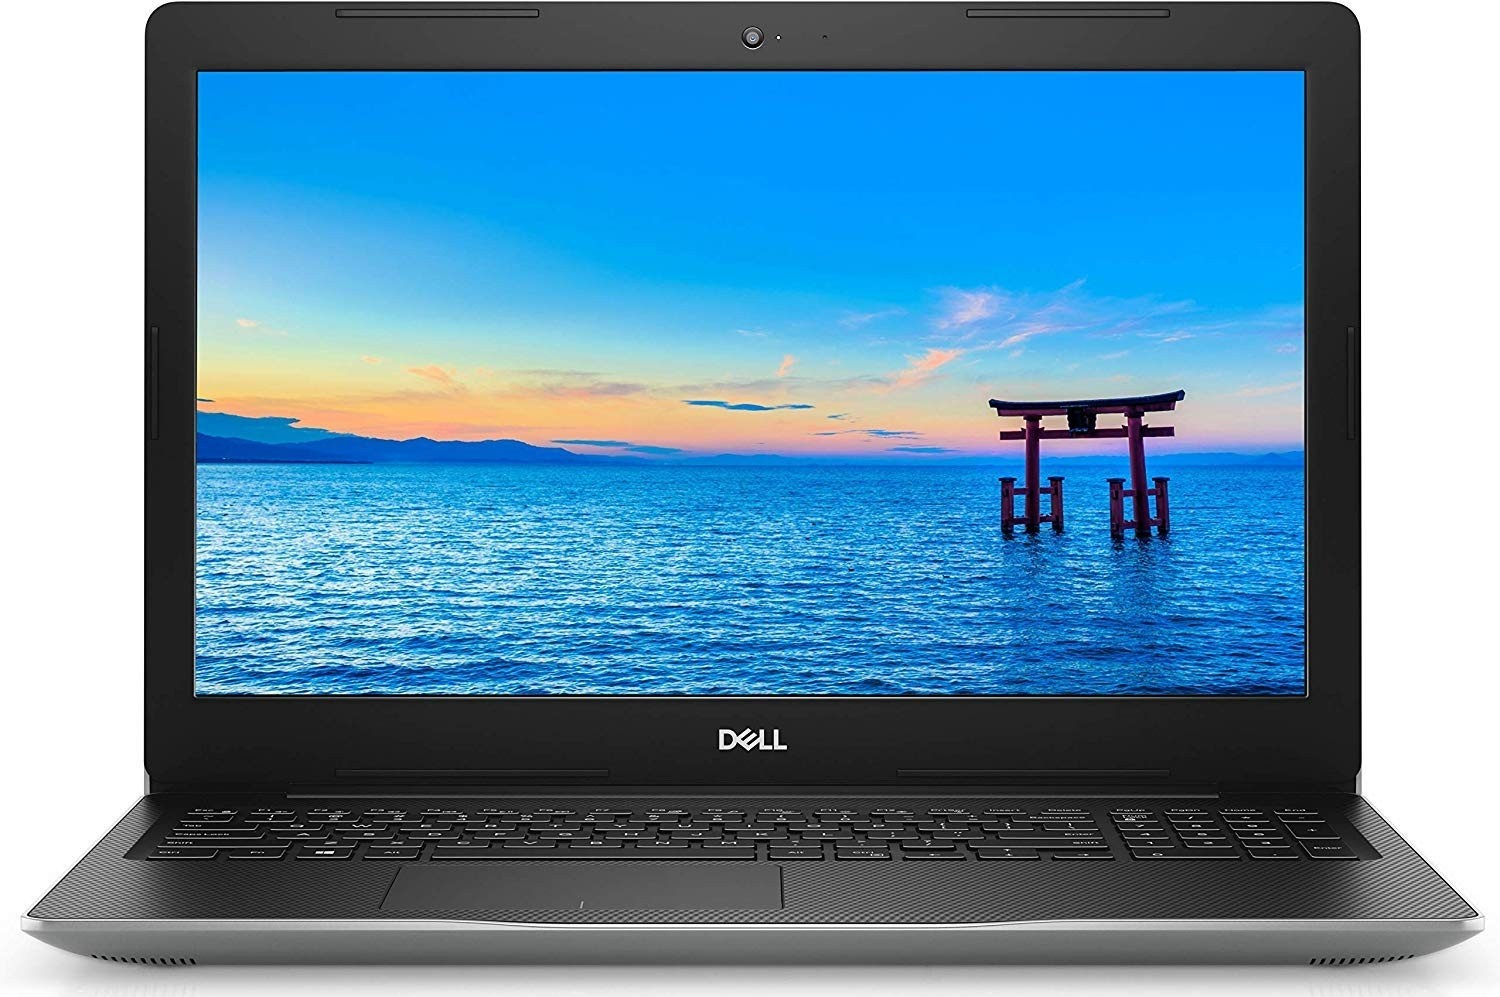 Refurbished laptops & desktops - Dell Inspiron 3585 15.6 Inch FHD Laptop (AMD Ryzen 5-2500U / 4GB RAM / 1TB HDD / Windows 10 Home  / Vega 3 Graphics/Silver/2.2 Kg)